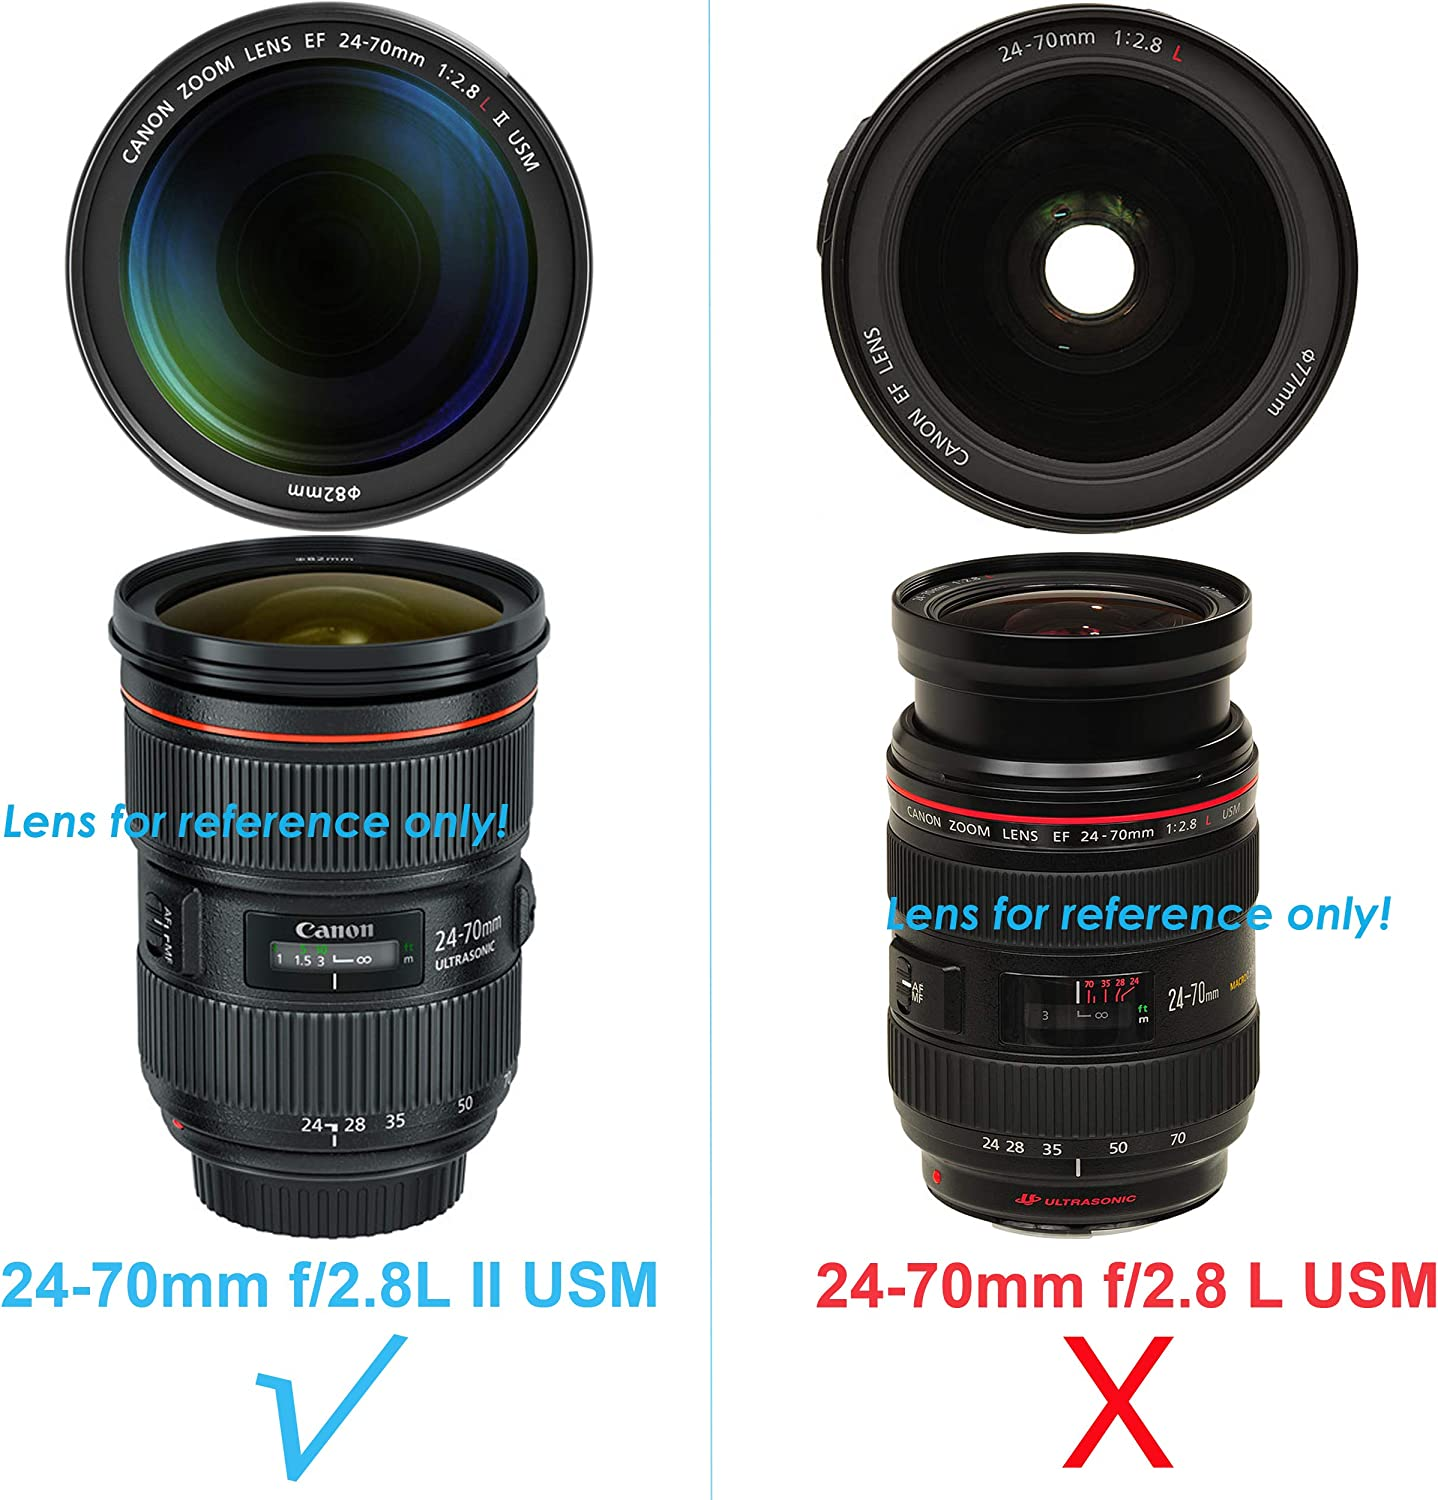 Fotasy Dedicated Bayonet Lens Hood for Canon EF-S 55-250mm f//4-5.6 IS STM Lens replacement of Canon ET-63 Lens Hood, Canon 55-250mm IS STM Lens Hood